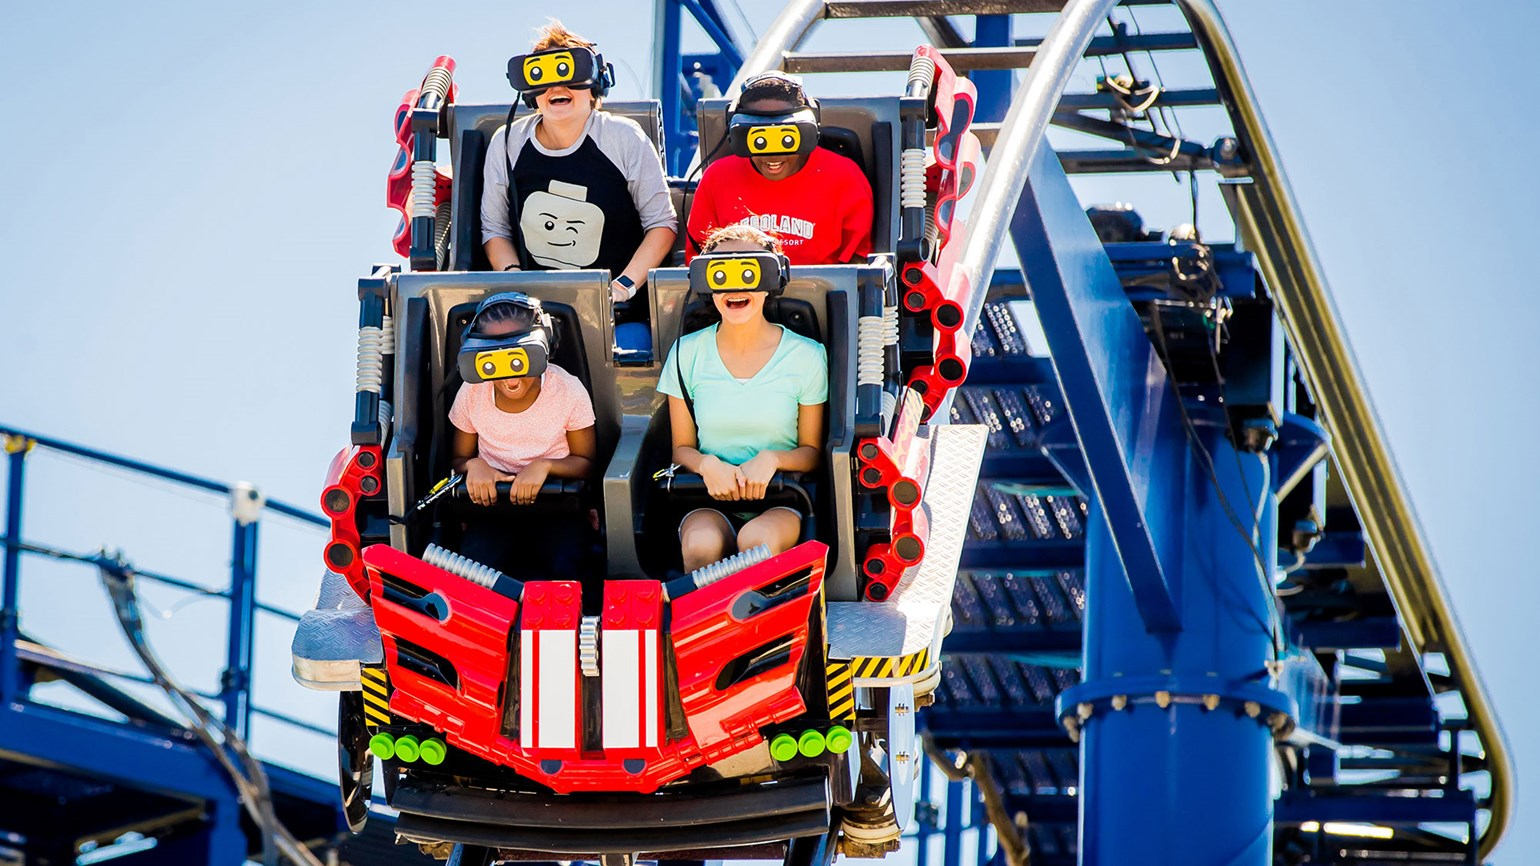 Legoland Florida launches kid-friendly virtual-reality coaster